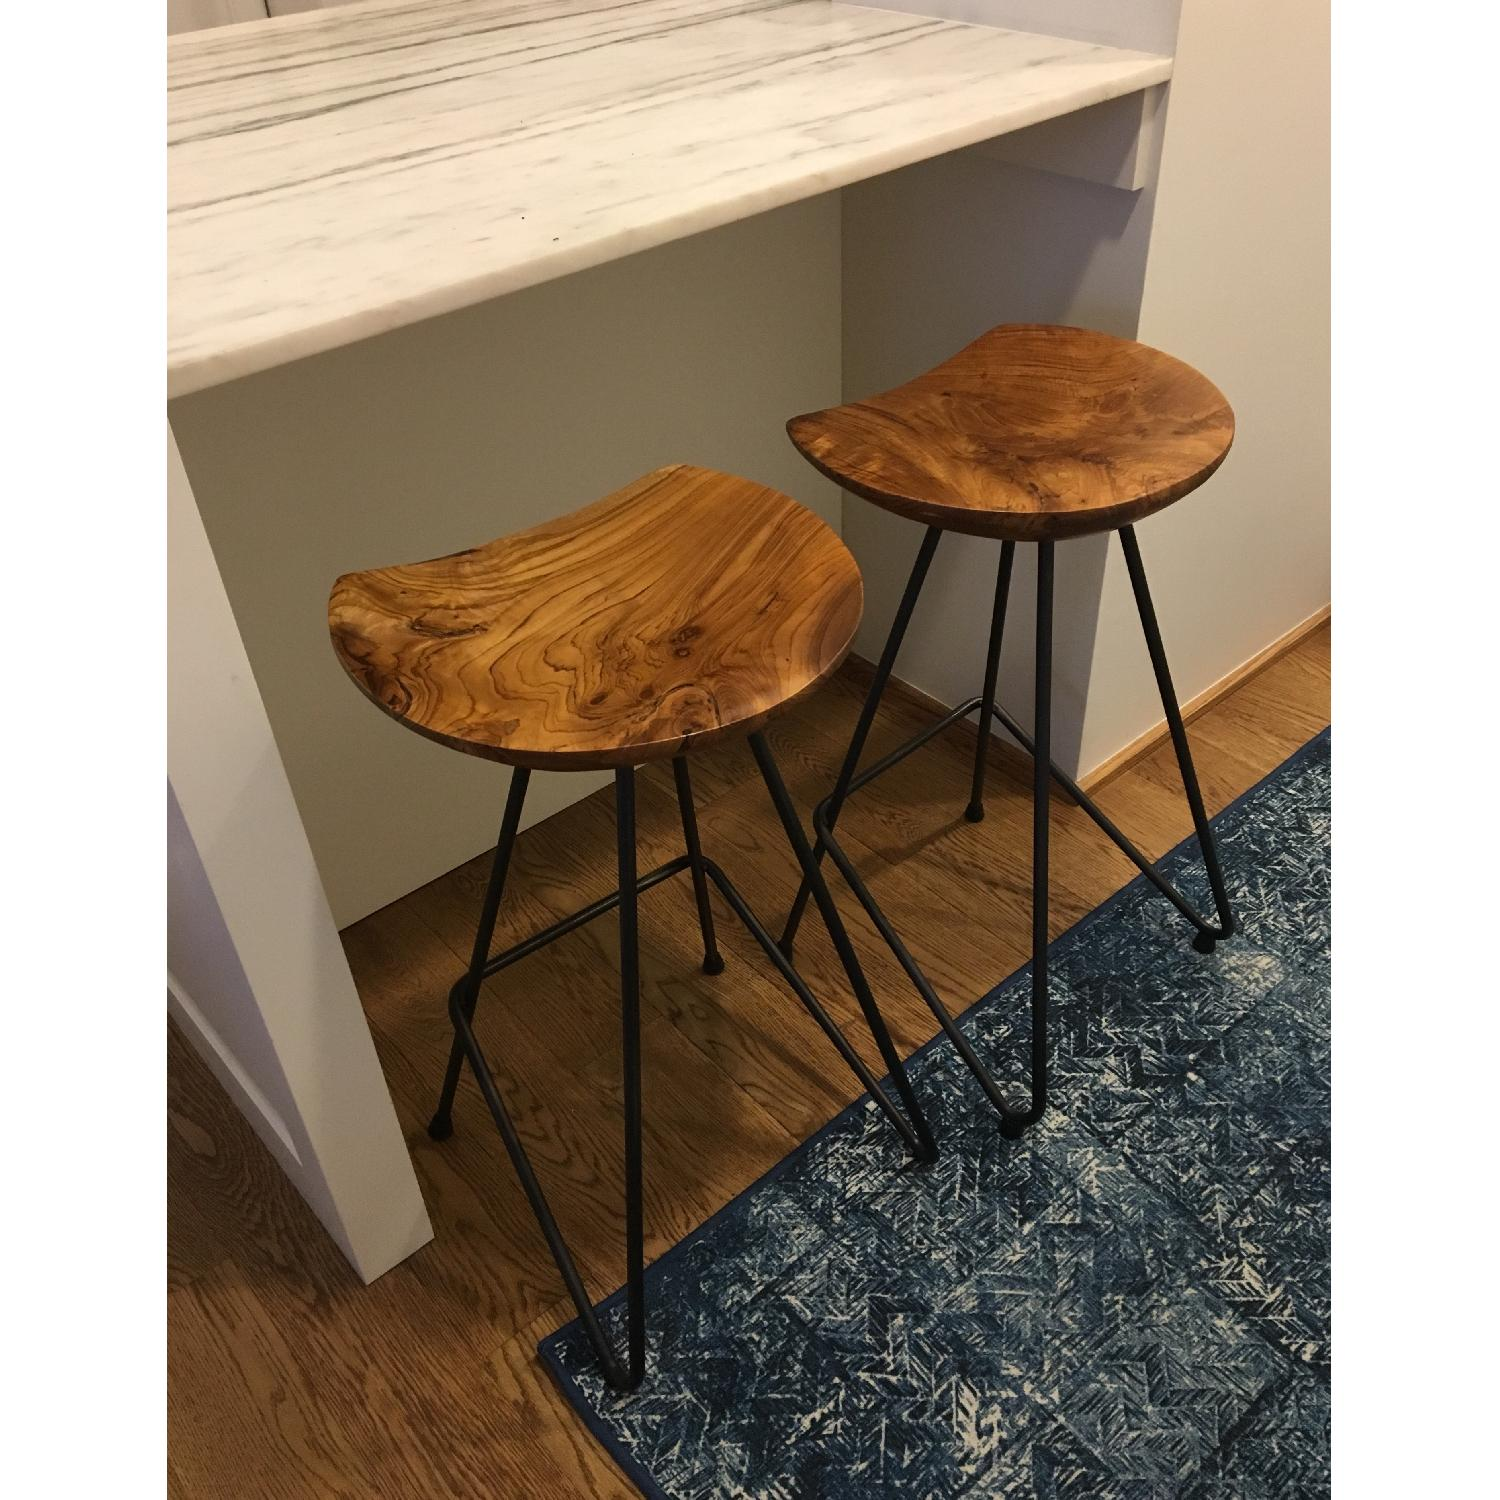 From The Source Perch Teak Bar Stool-0